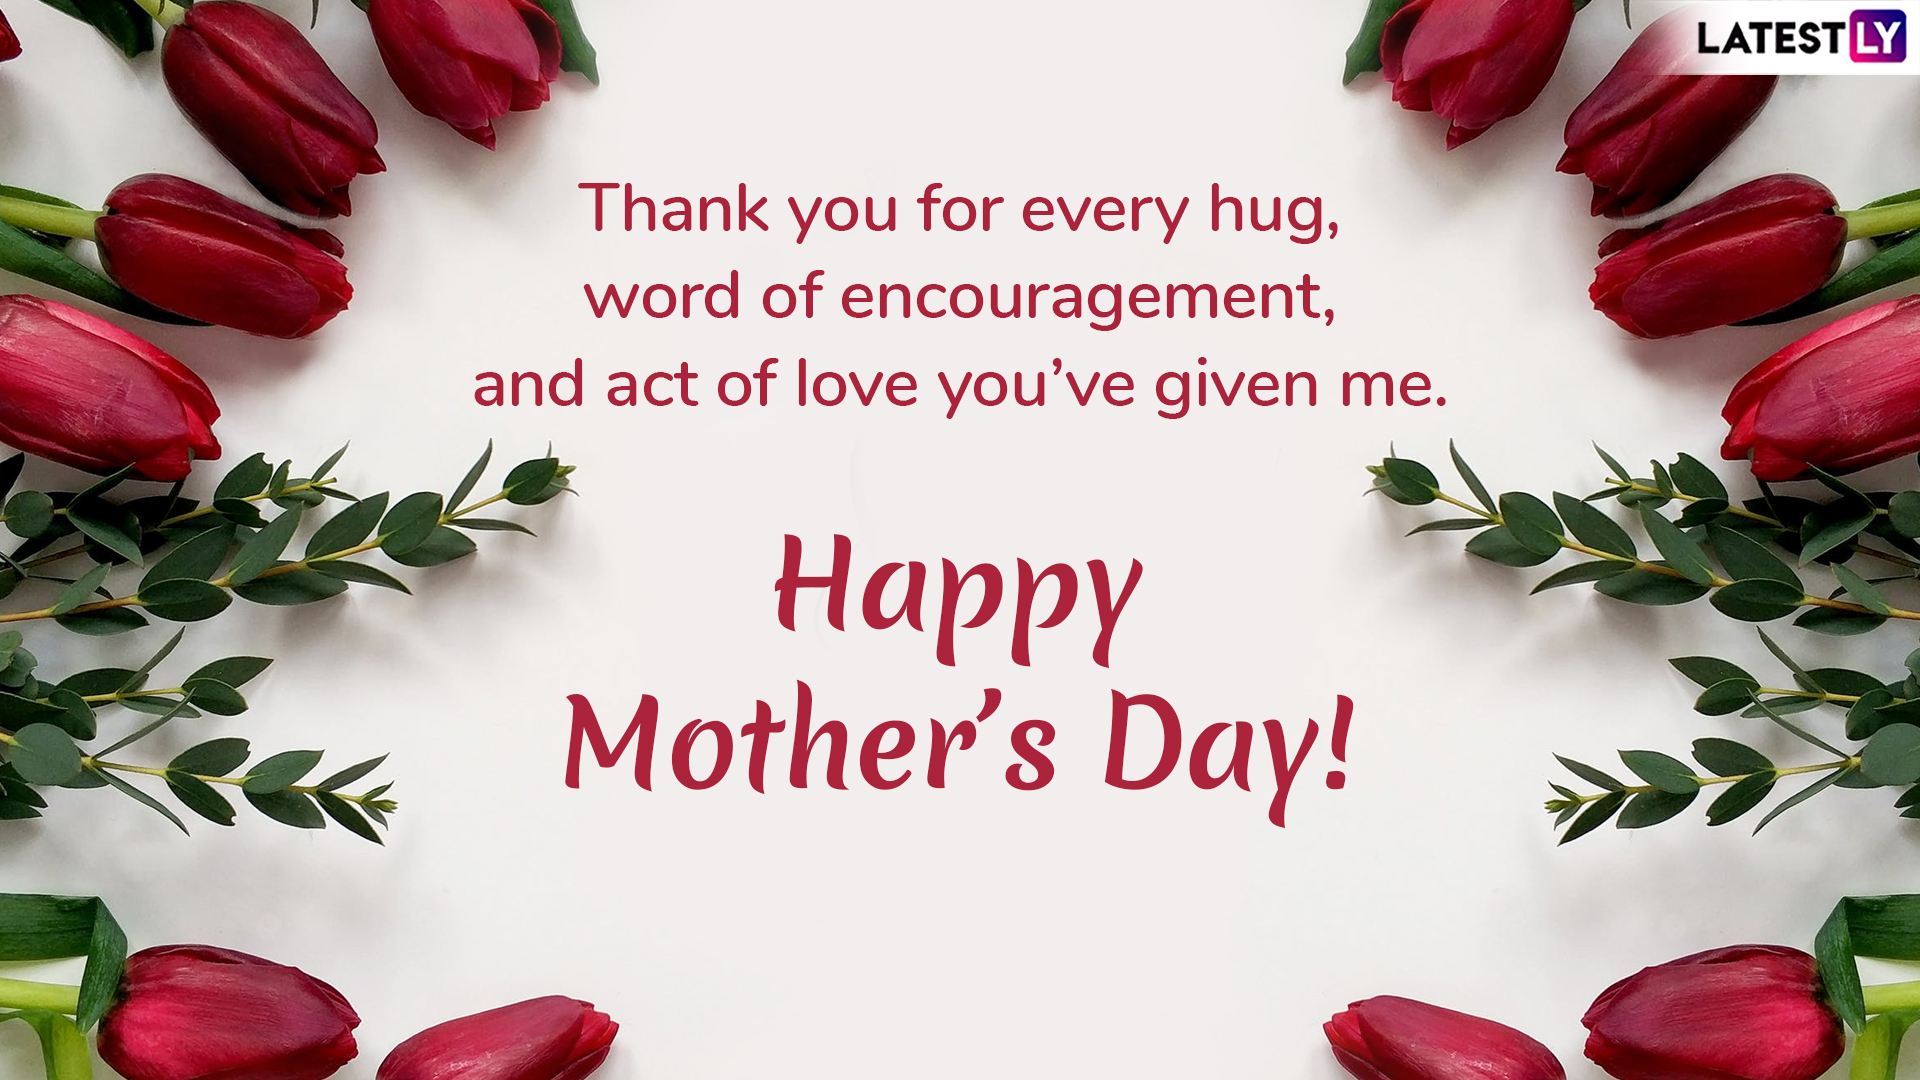 Happy Mother's Day 2019 Greeting Cards: Send These Wishes ...